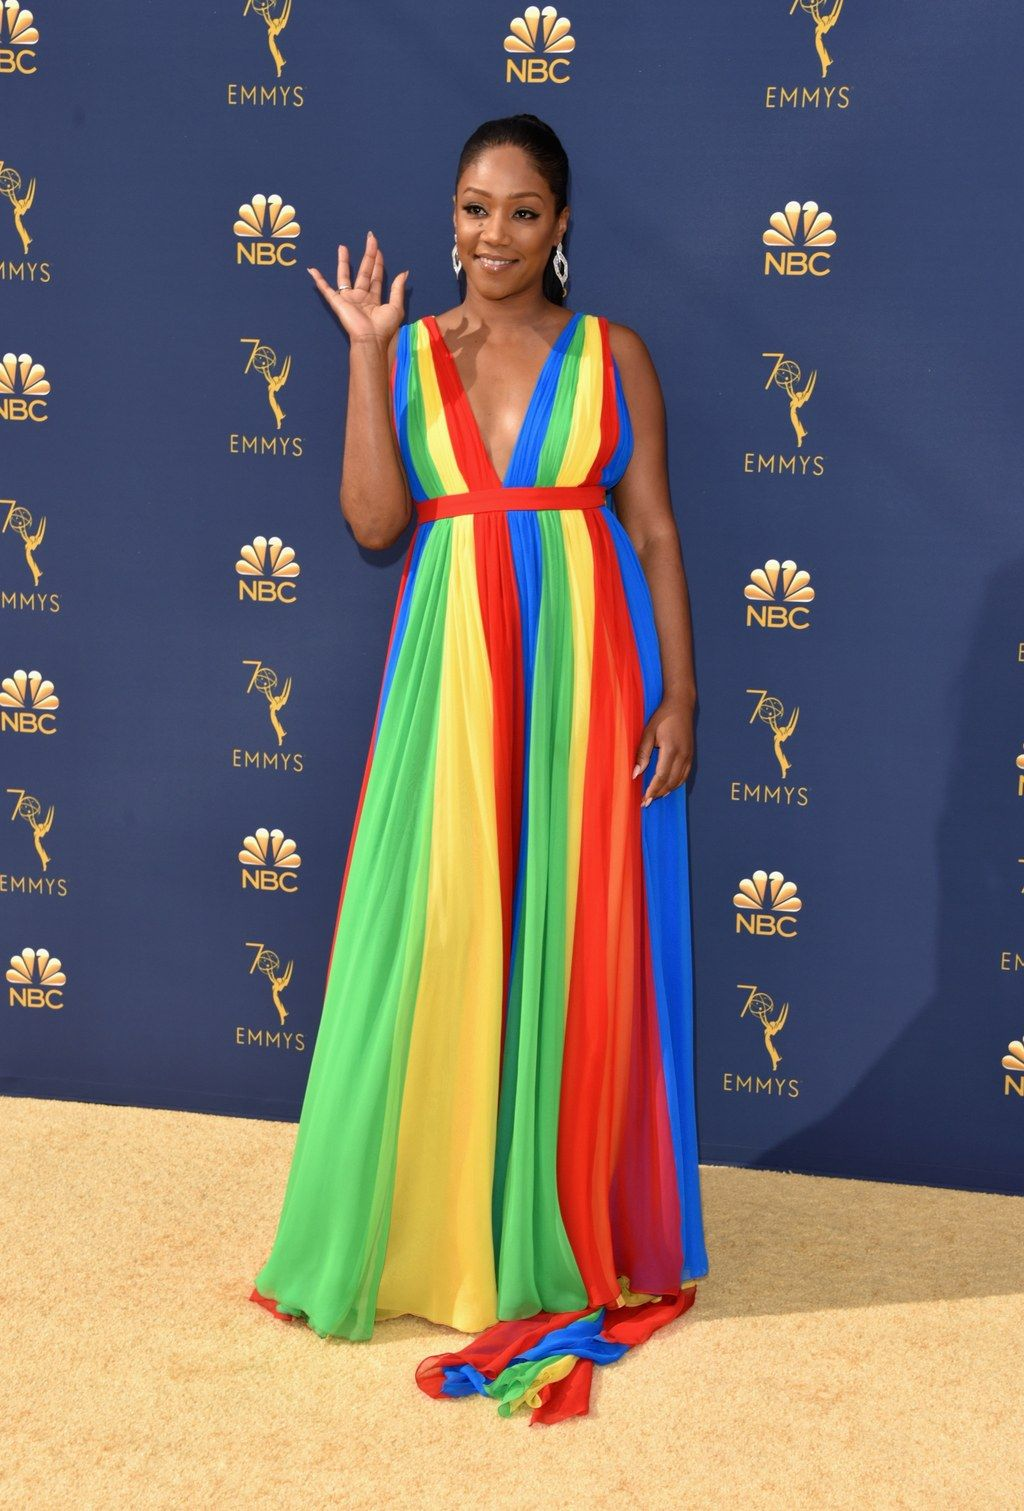 The best looks from the emmys red carpet in red